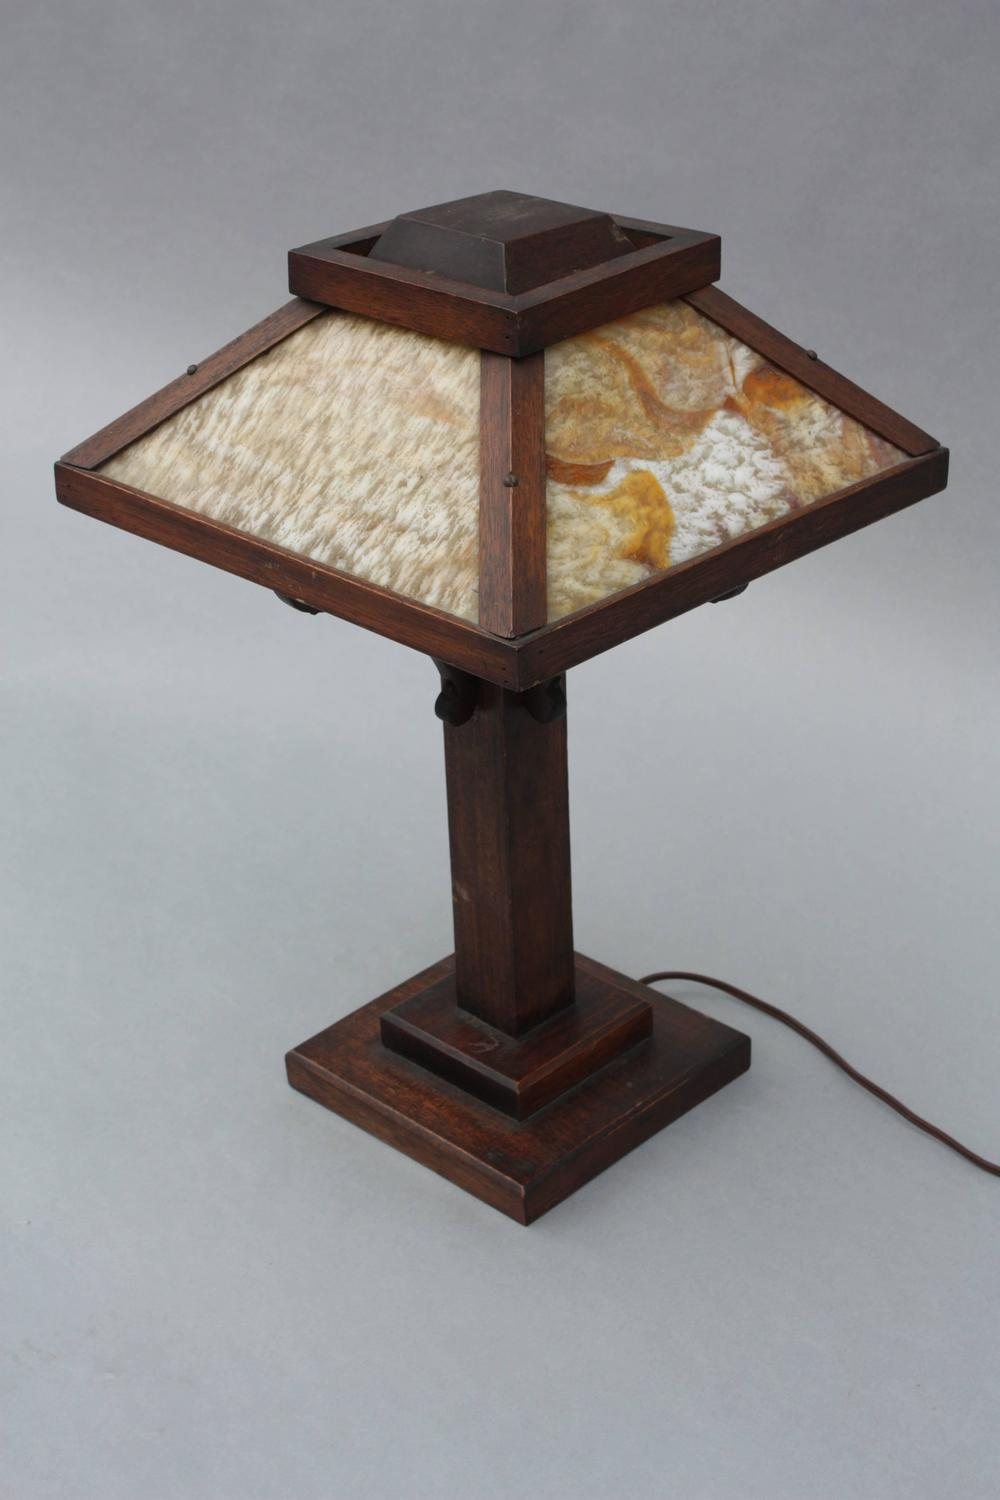 arts and crafts period oak table lamp for sale at 1stdibs. Black Bedroom Furniture Sets. Home Design Ideas